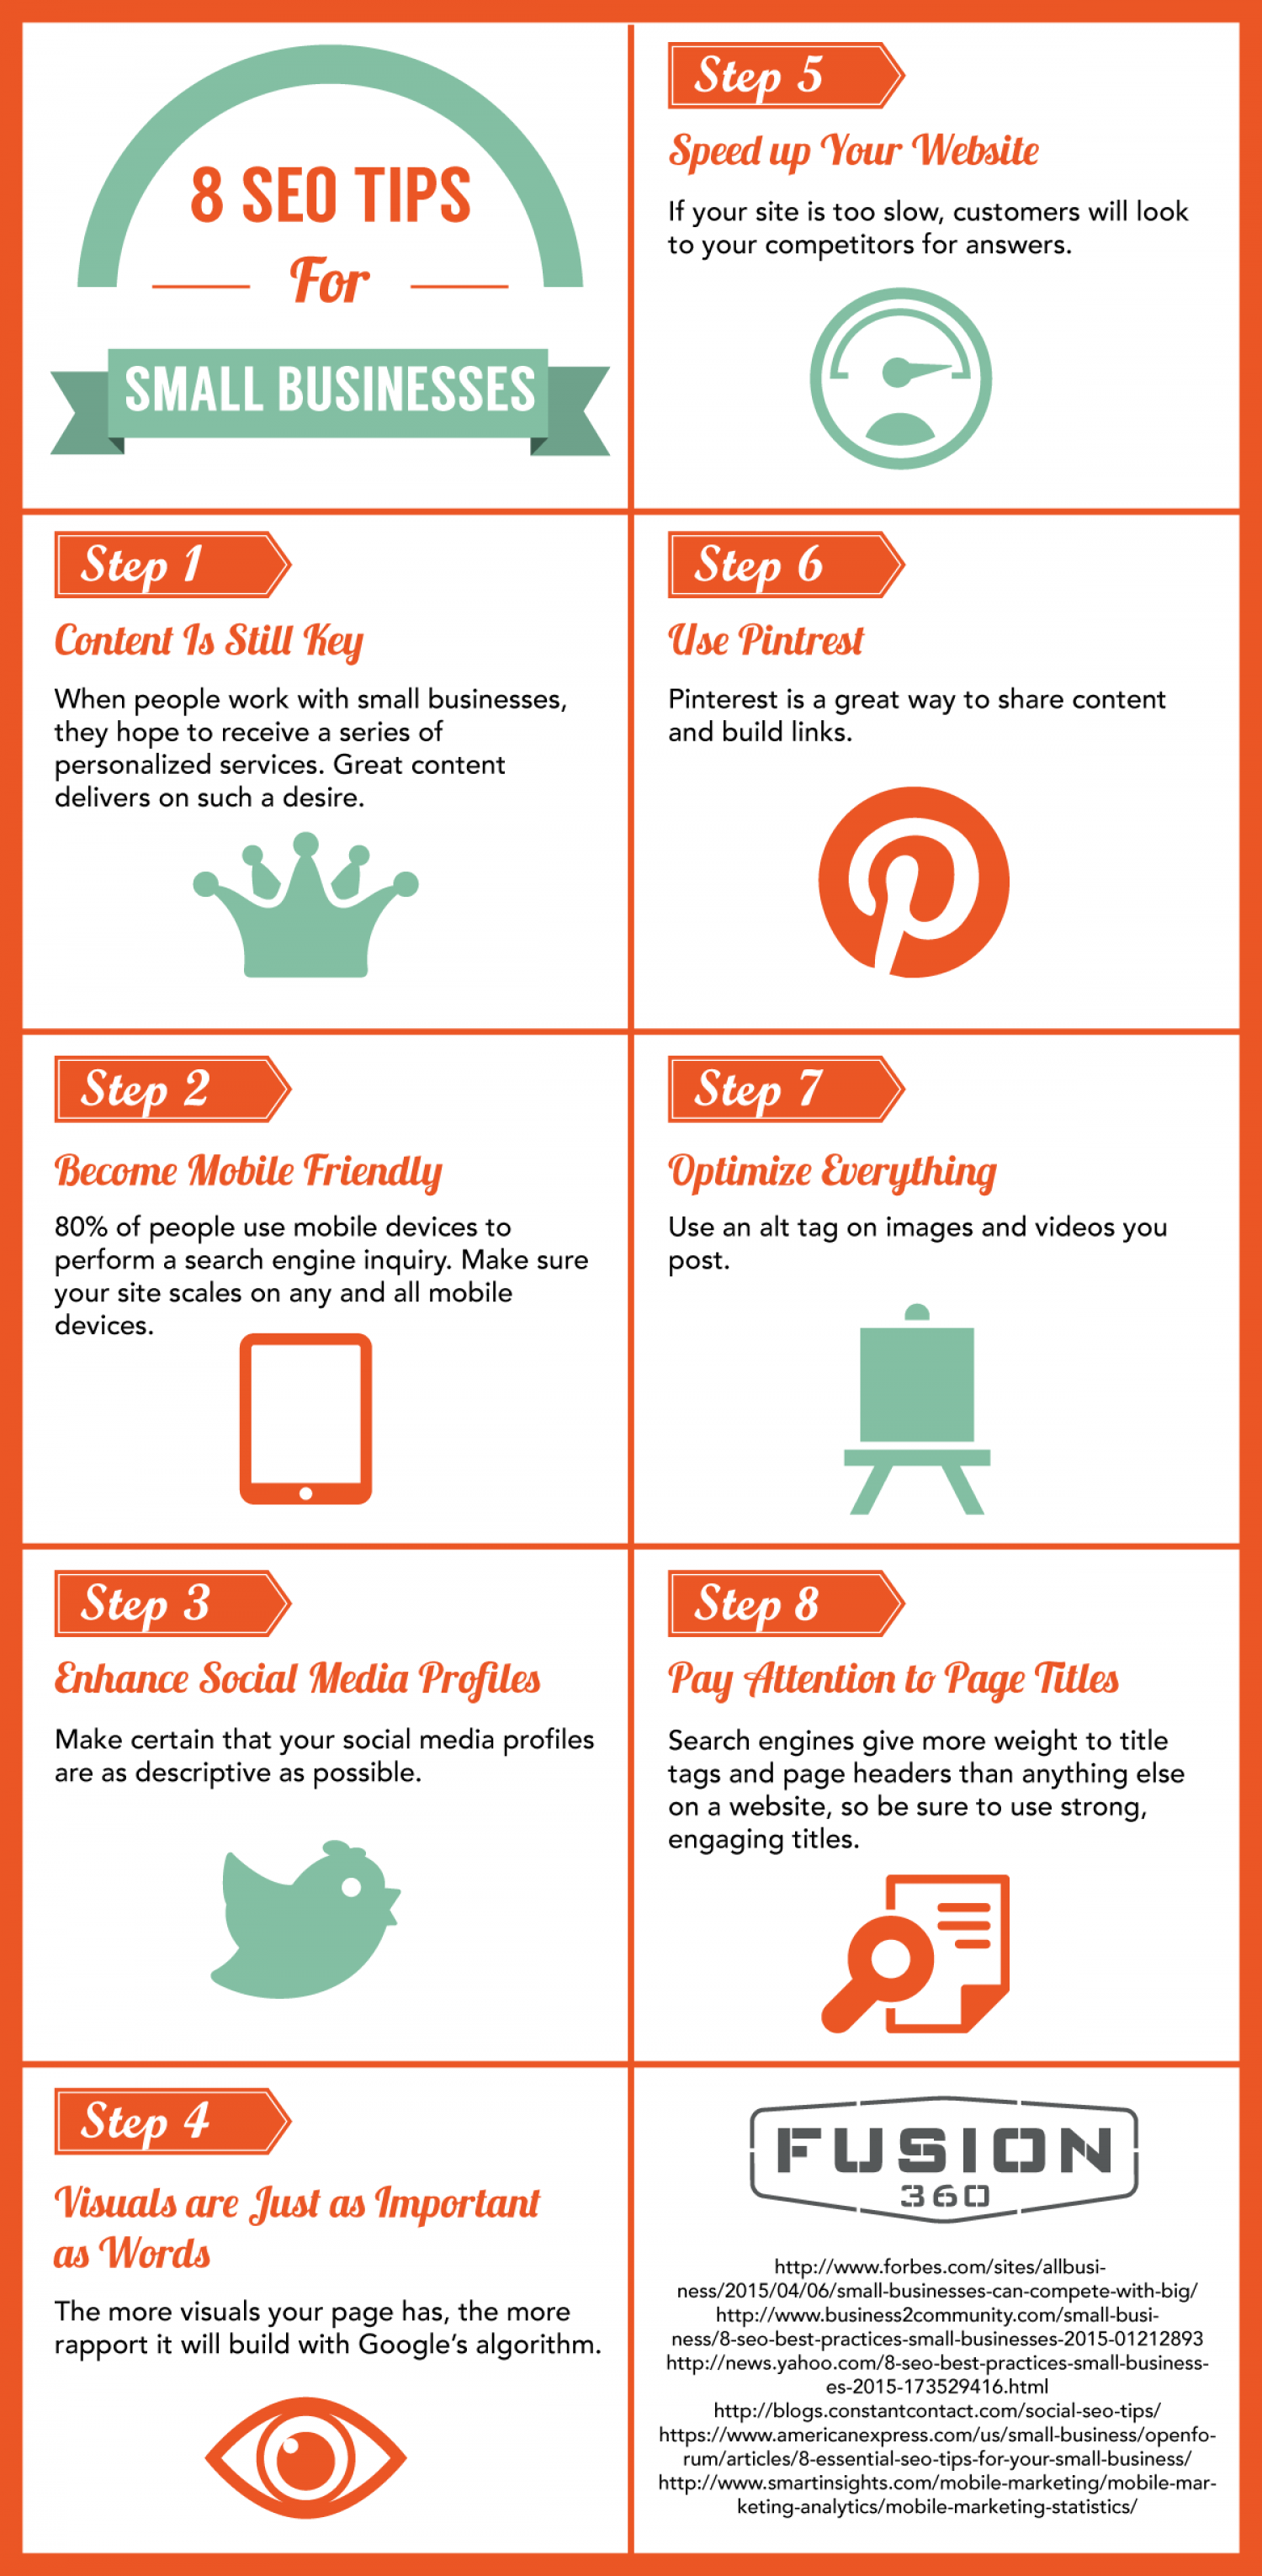 8 SEO Tips for Small Businesses Infographic